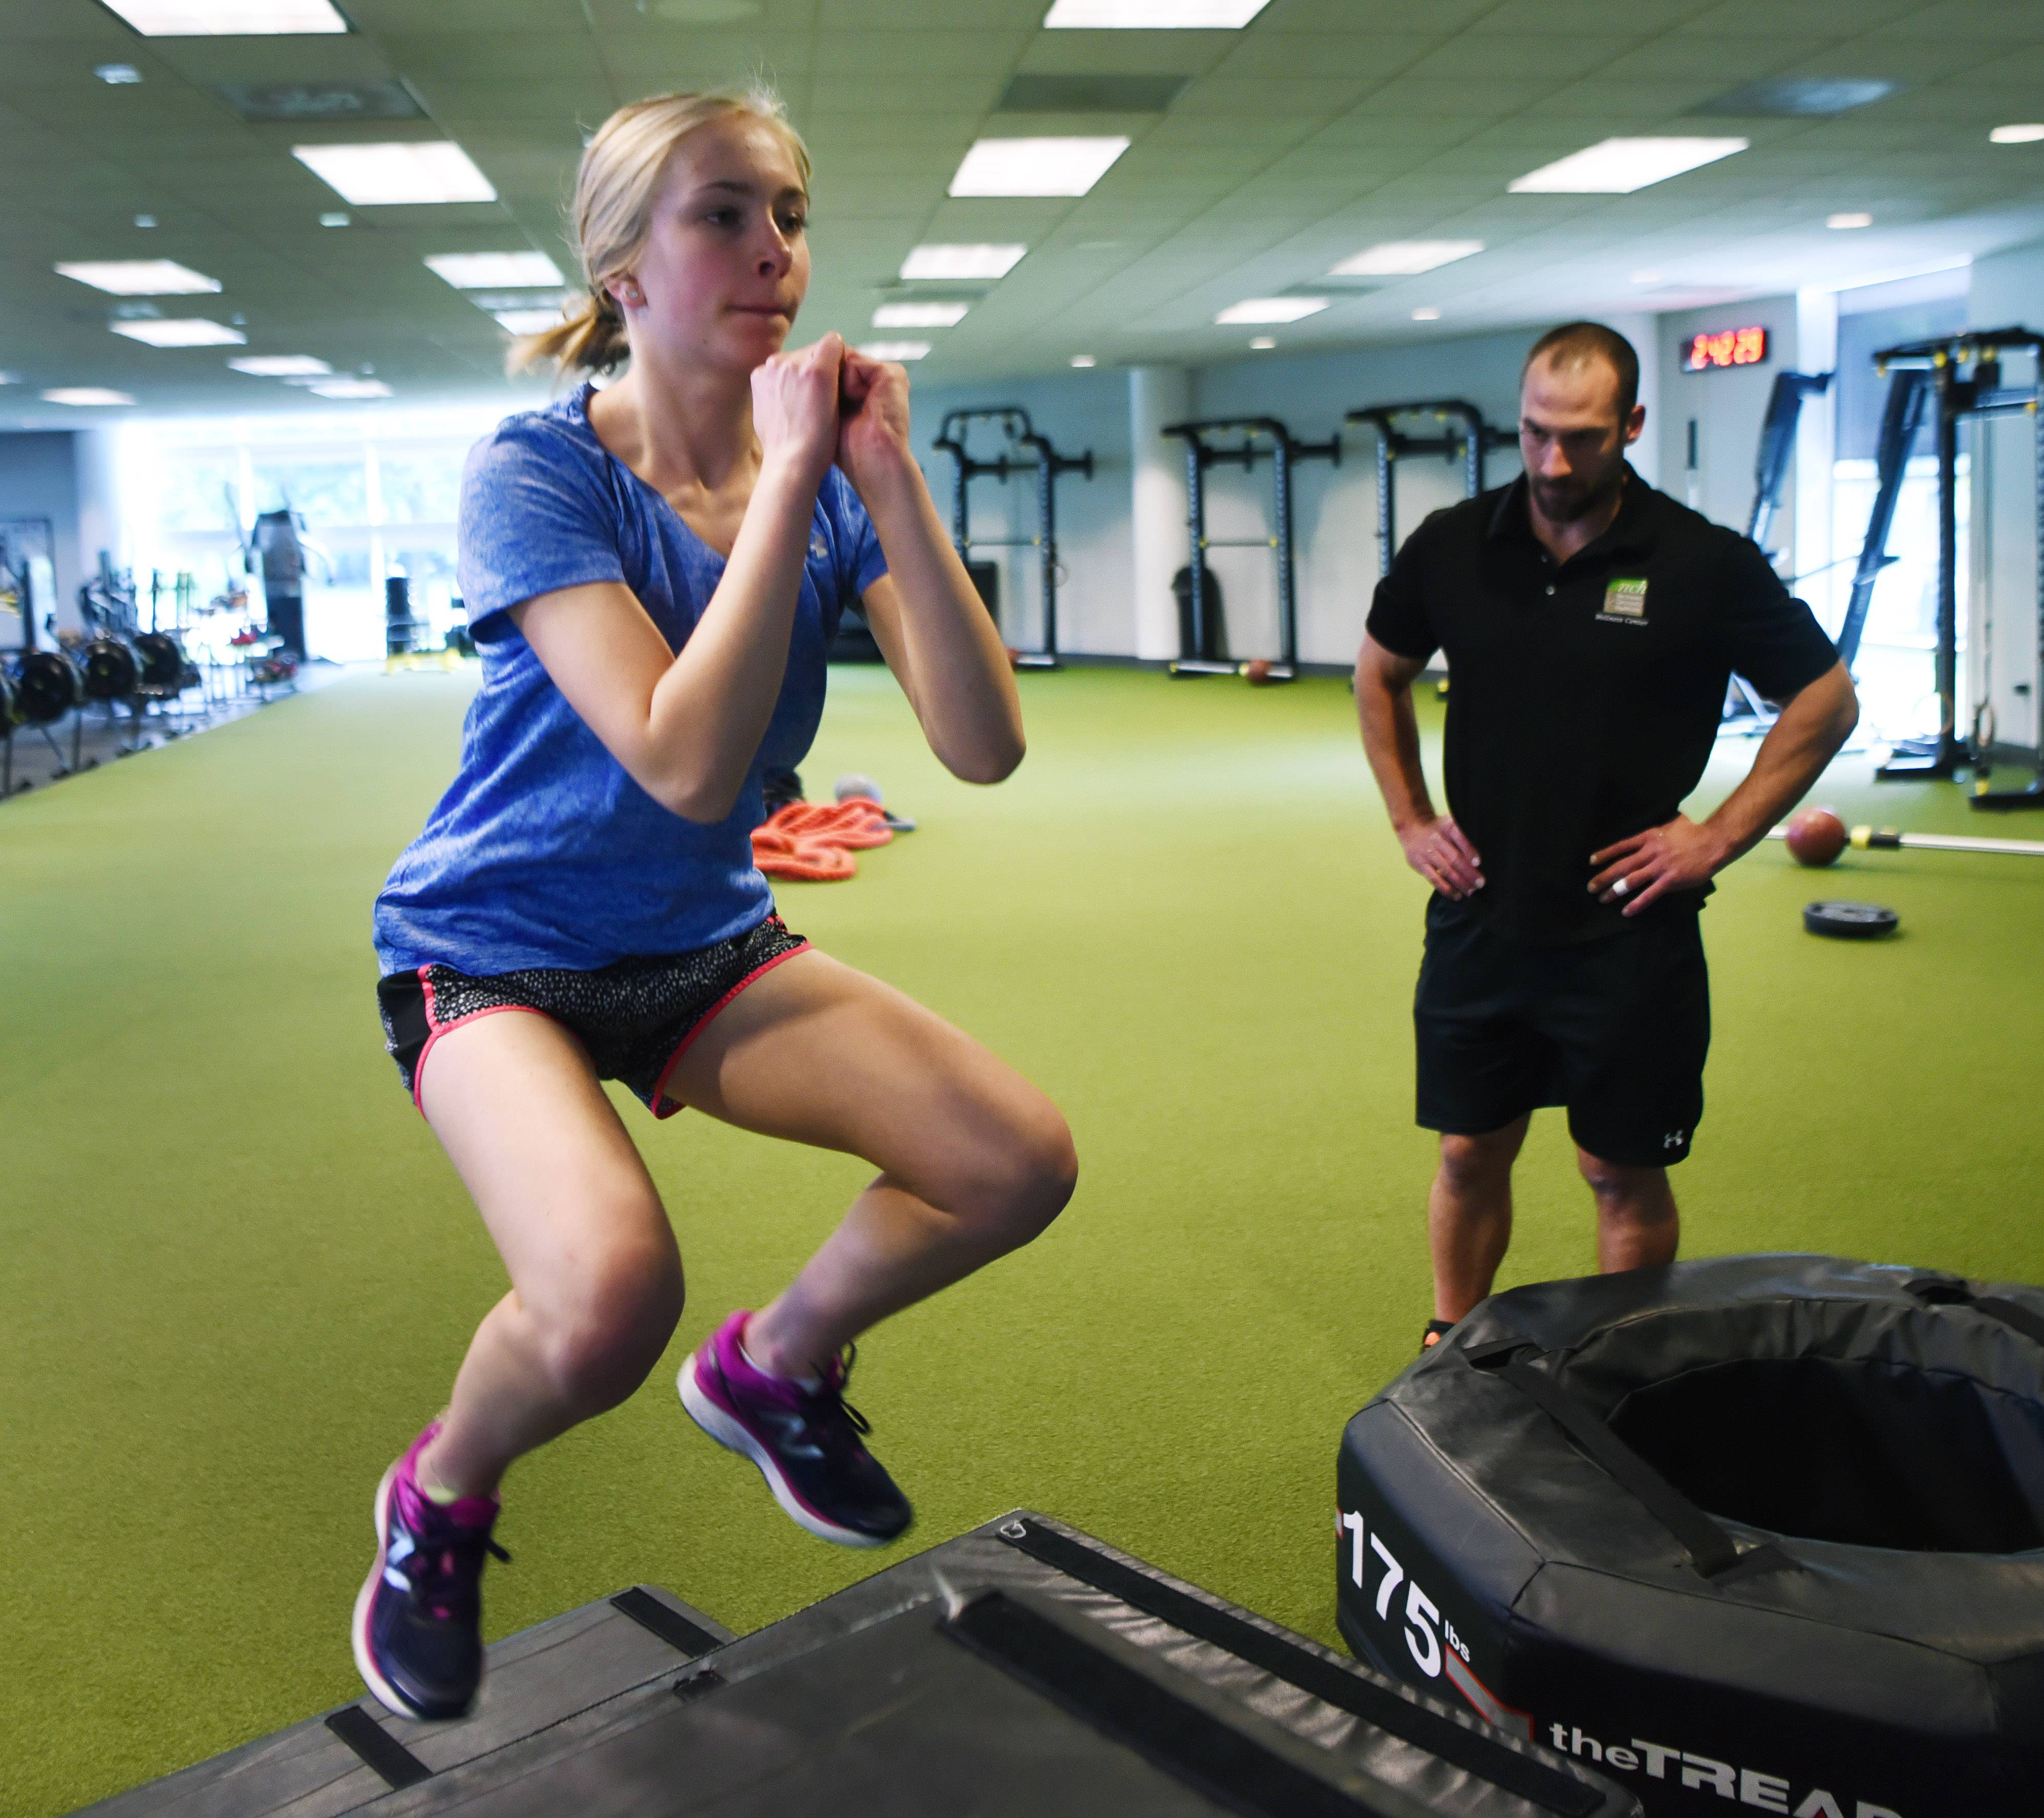 KC Jones, a Rolling Meadows High School sophomore from Arlington Heights, works out under the direction of personal trainer Matt Brauer at the Northwest Community Hospital Wellness Center.